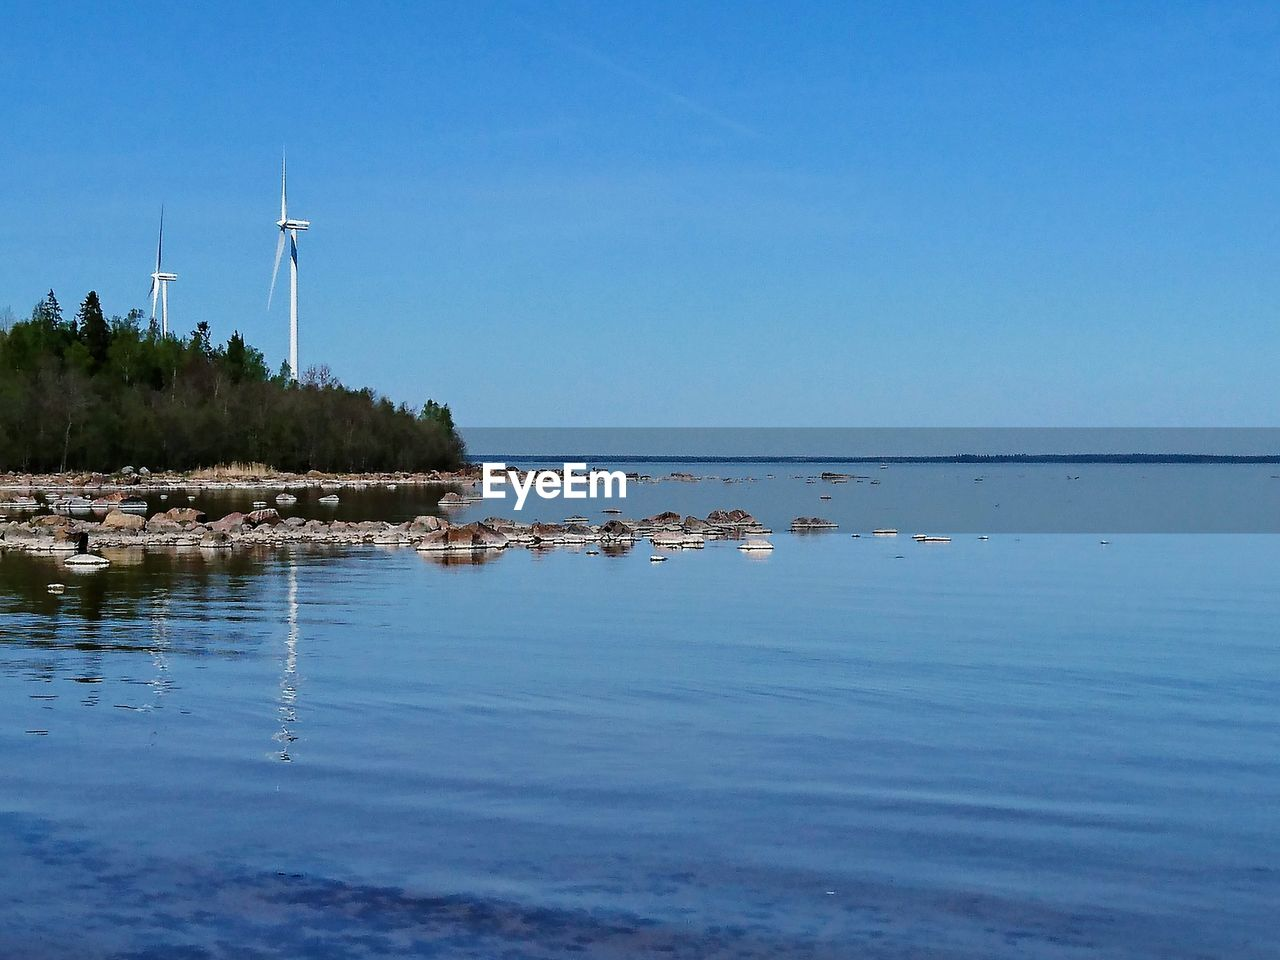 alternative energy, water, wind power, wind turbine, renewable energy, environmental conservation, nature, fuel and power generation, windmill, blue, waterfront, beauty in nature, scenics, no people, day, outdoors, sea, industrial windmill, tranquility, sky, clear sky